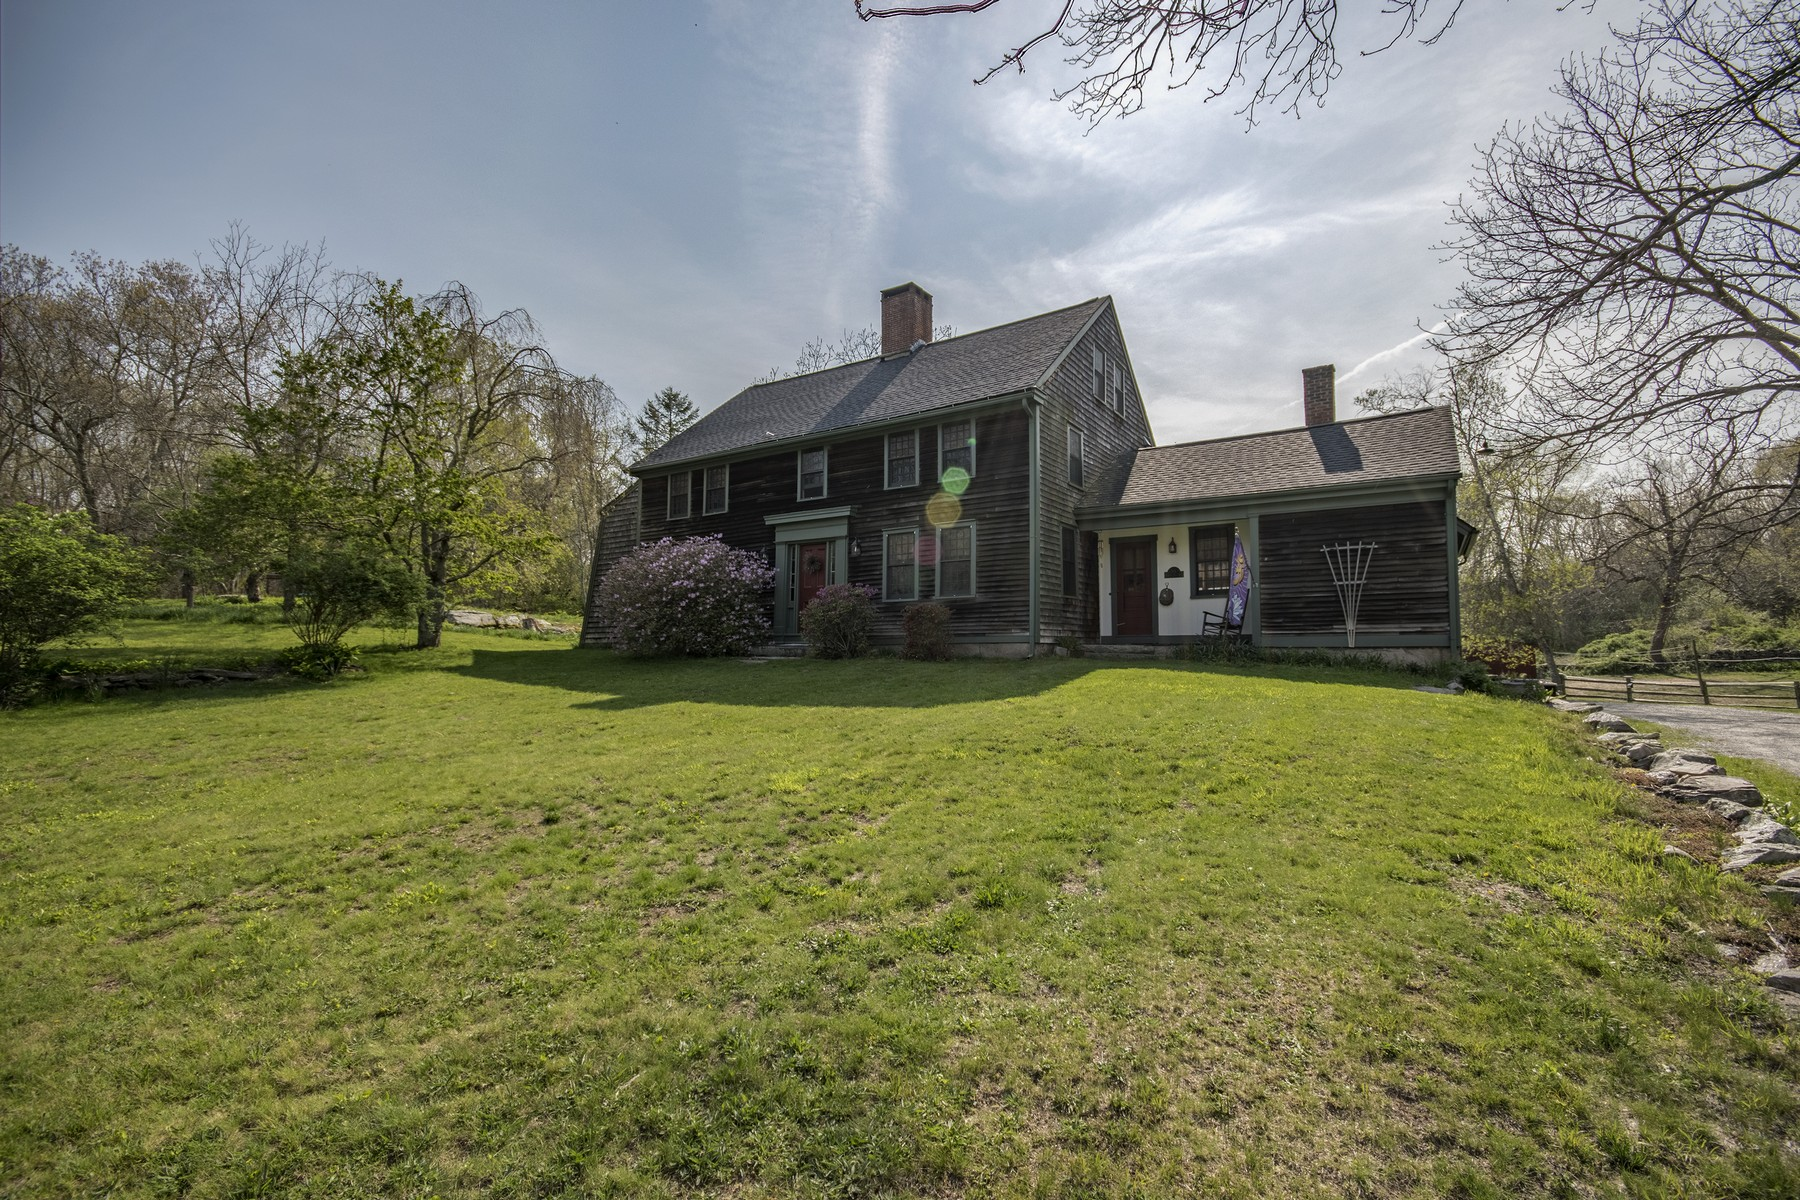 Single Family Home for Sale at 89 Diamond Hill Rd, Hopkinton, RI Hopkinton, 02808 United States